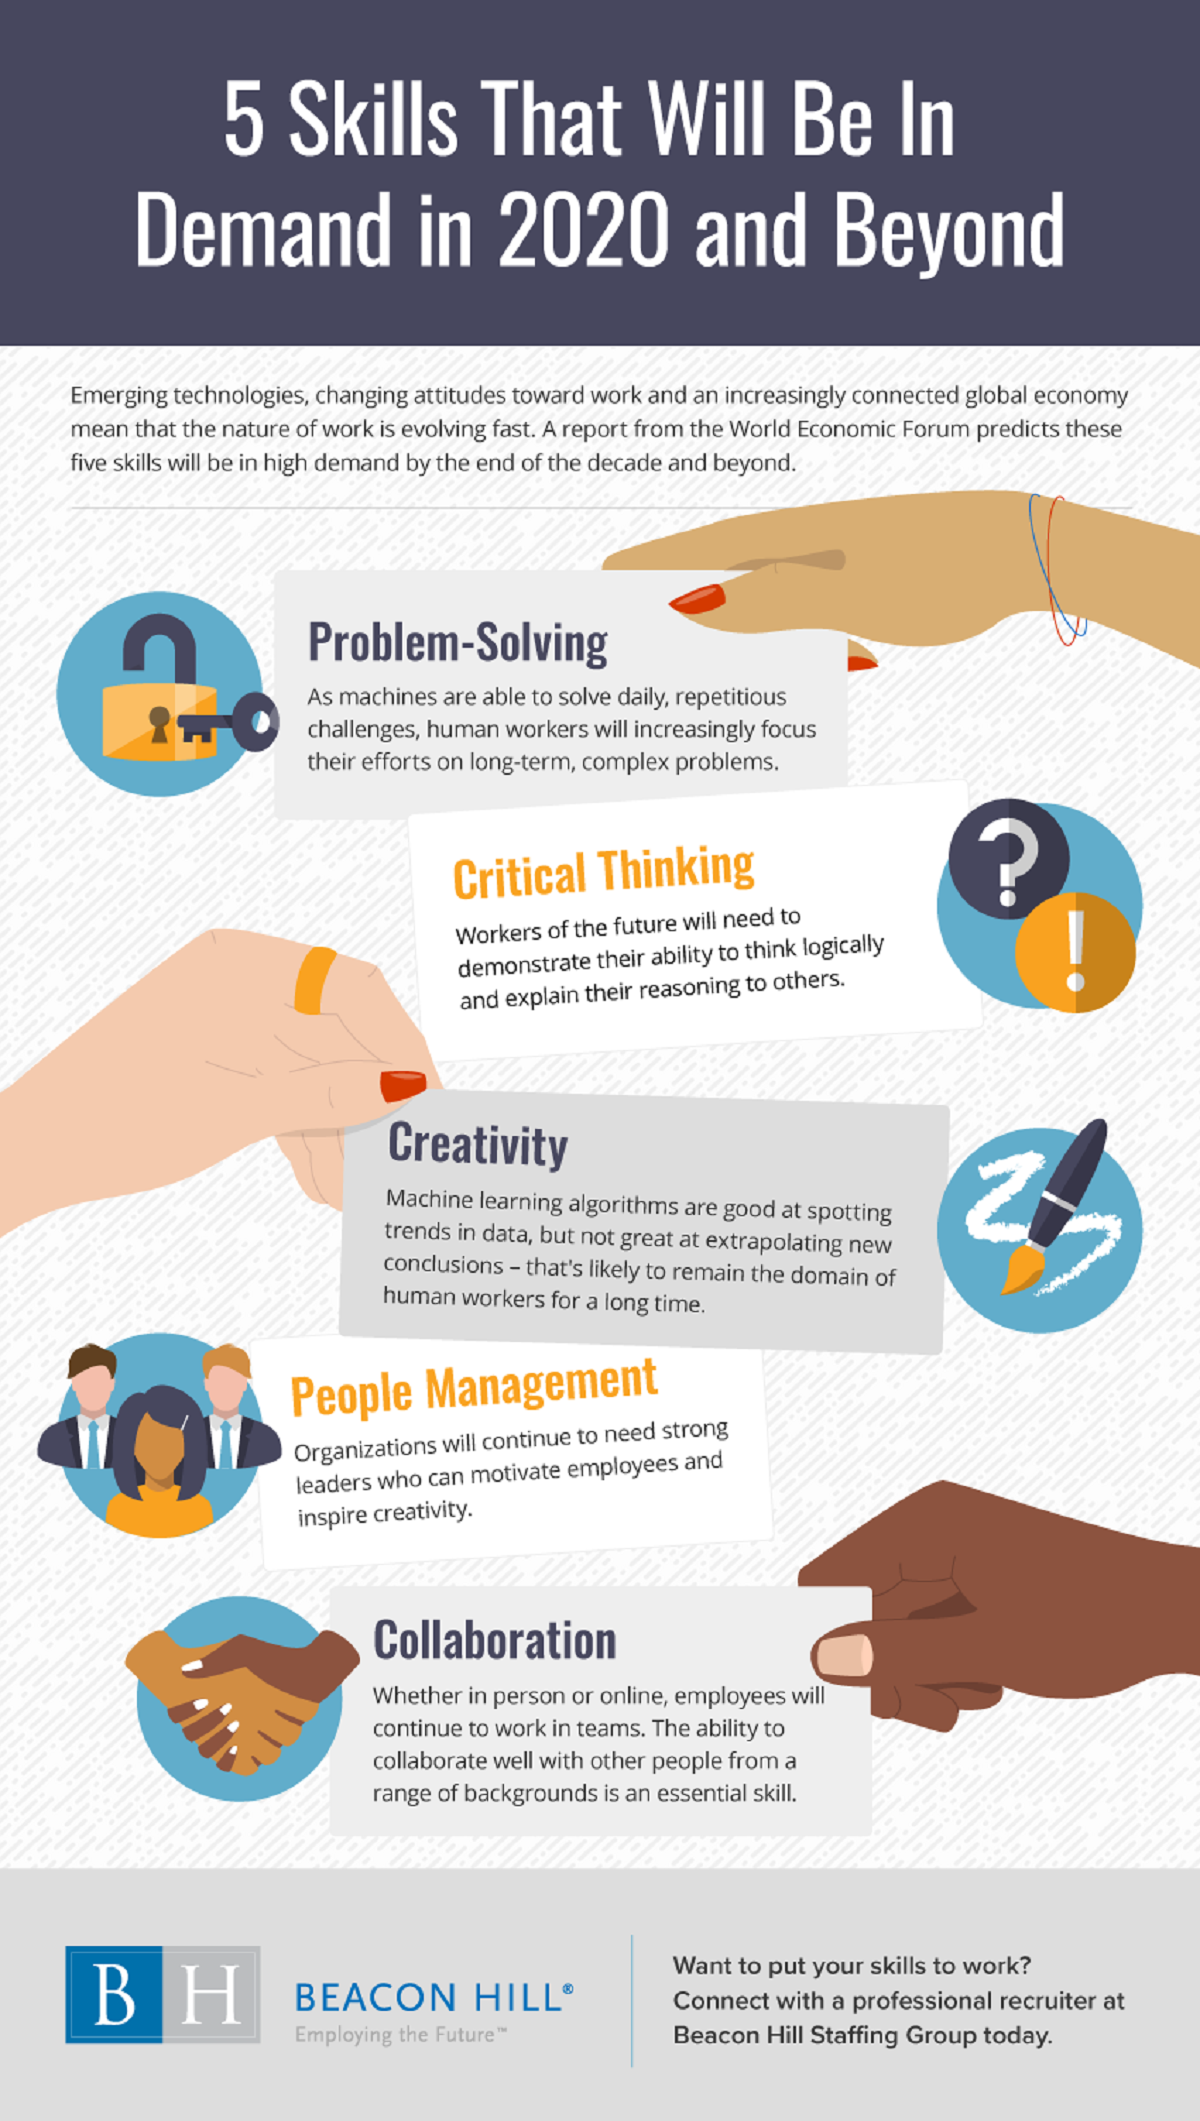 5-skills-that-will-be-in-demand-in-2020-and-beyond-infographic